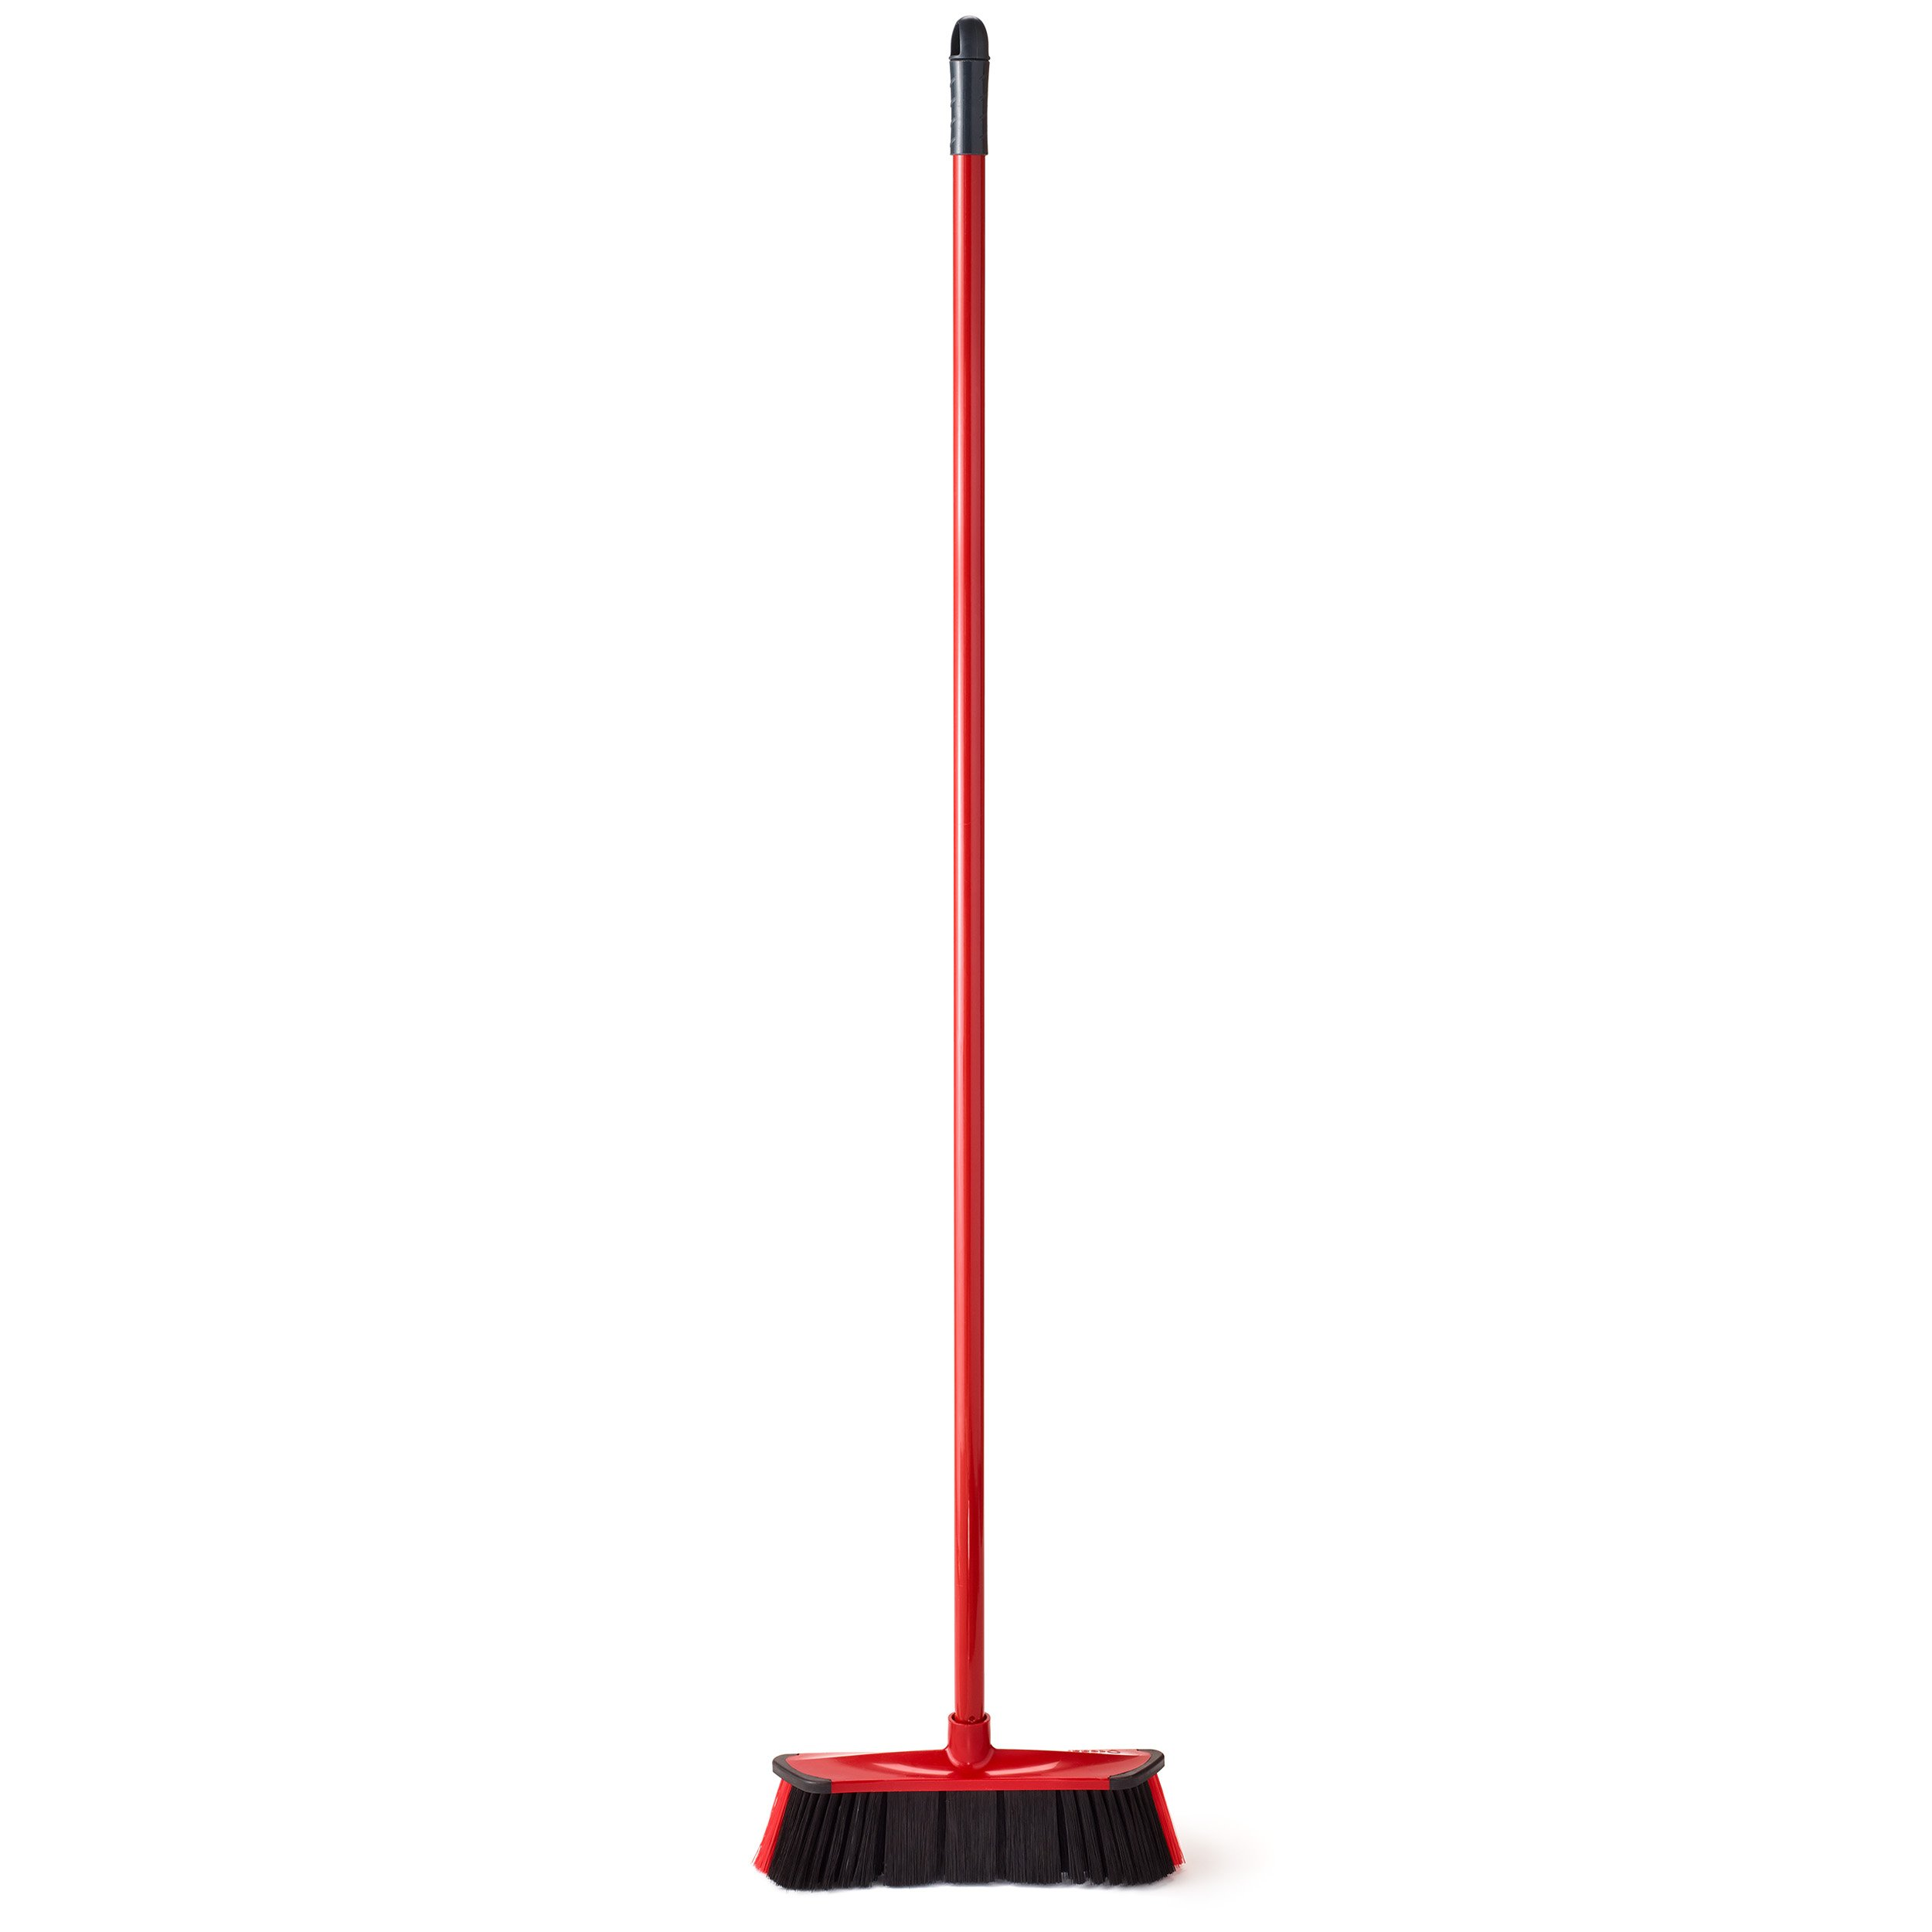 O-Cedar 3-Action Upright Broom by O-Cedar (Image #6)